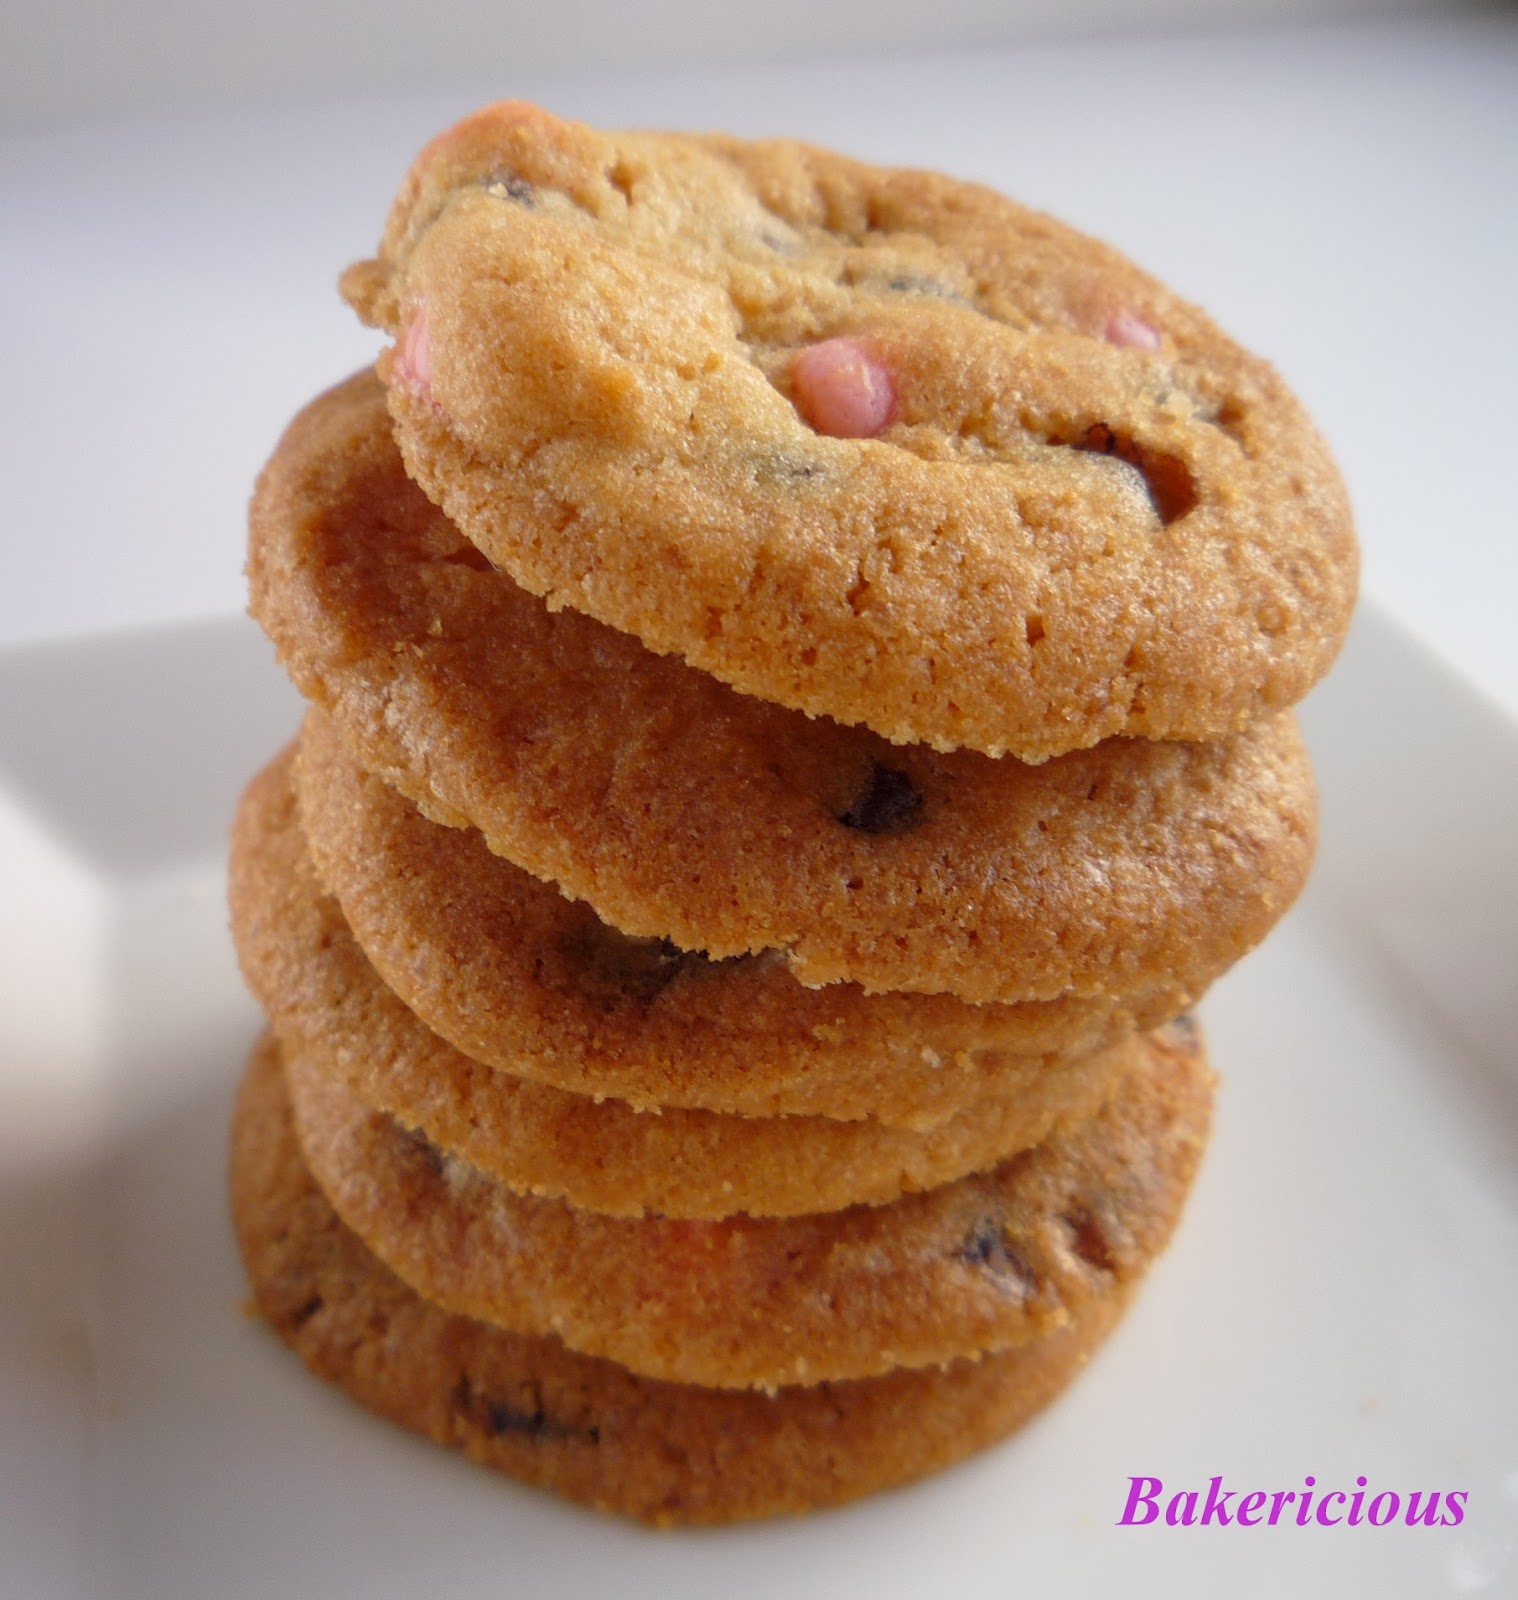 Bakericious: Crunchy Chocolate Chips Cookies